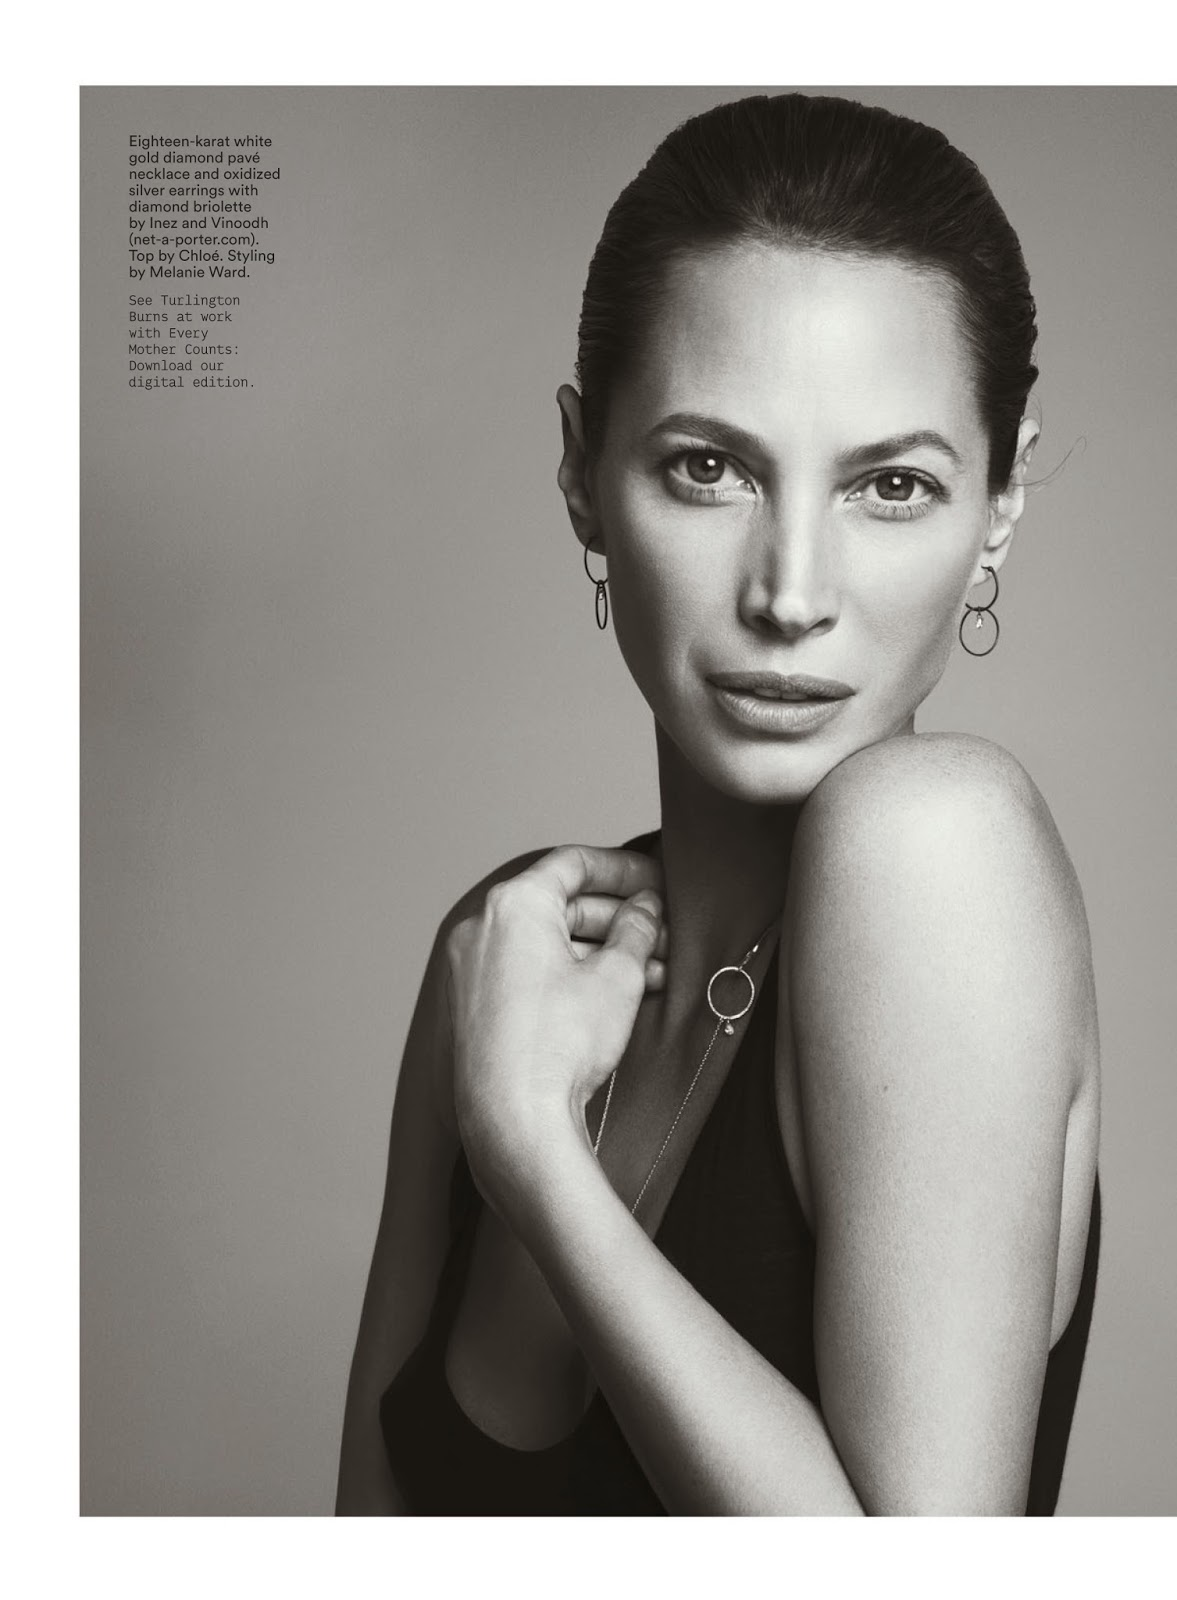 Christy Turlington HQ Pictures Conde Nast Traveler US Magazine Photoshoot March 2014